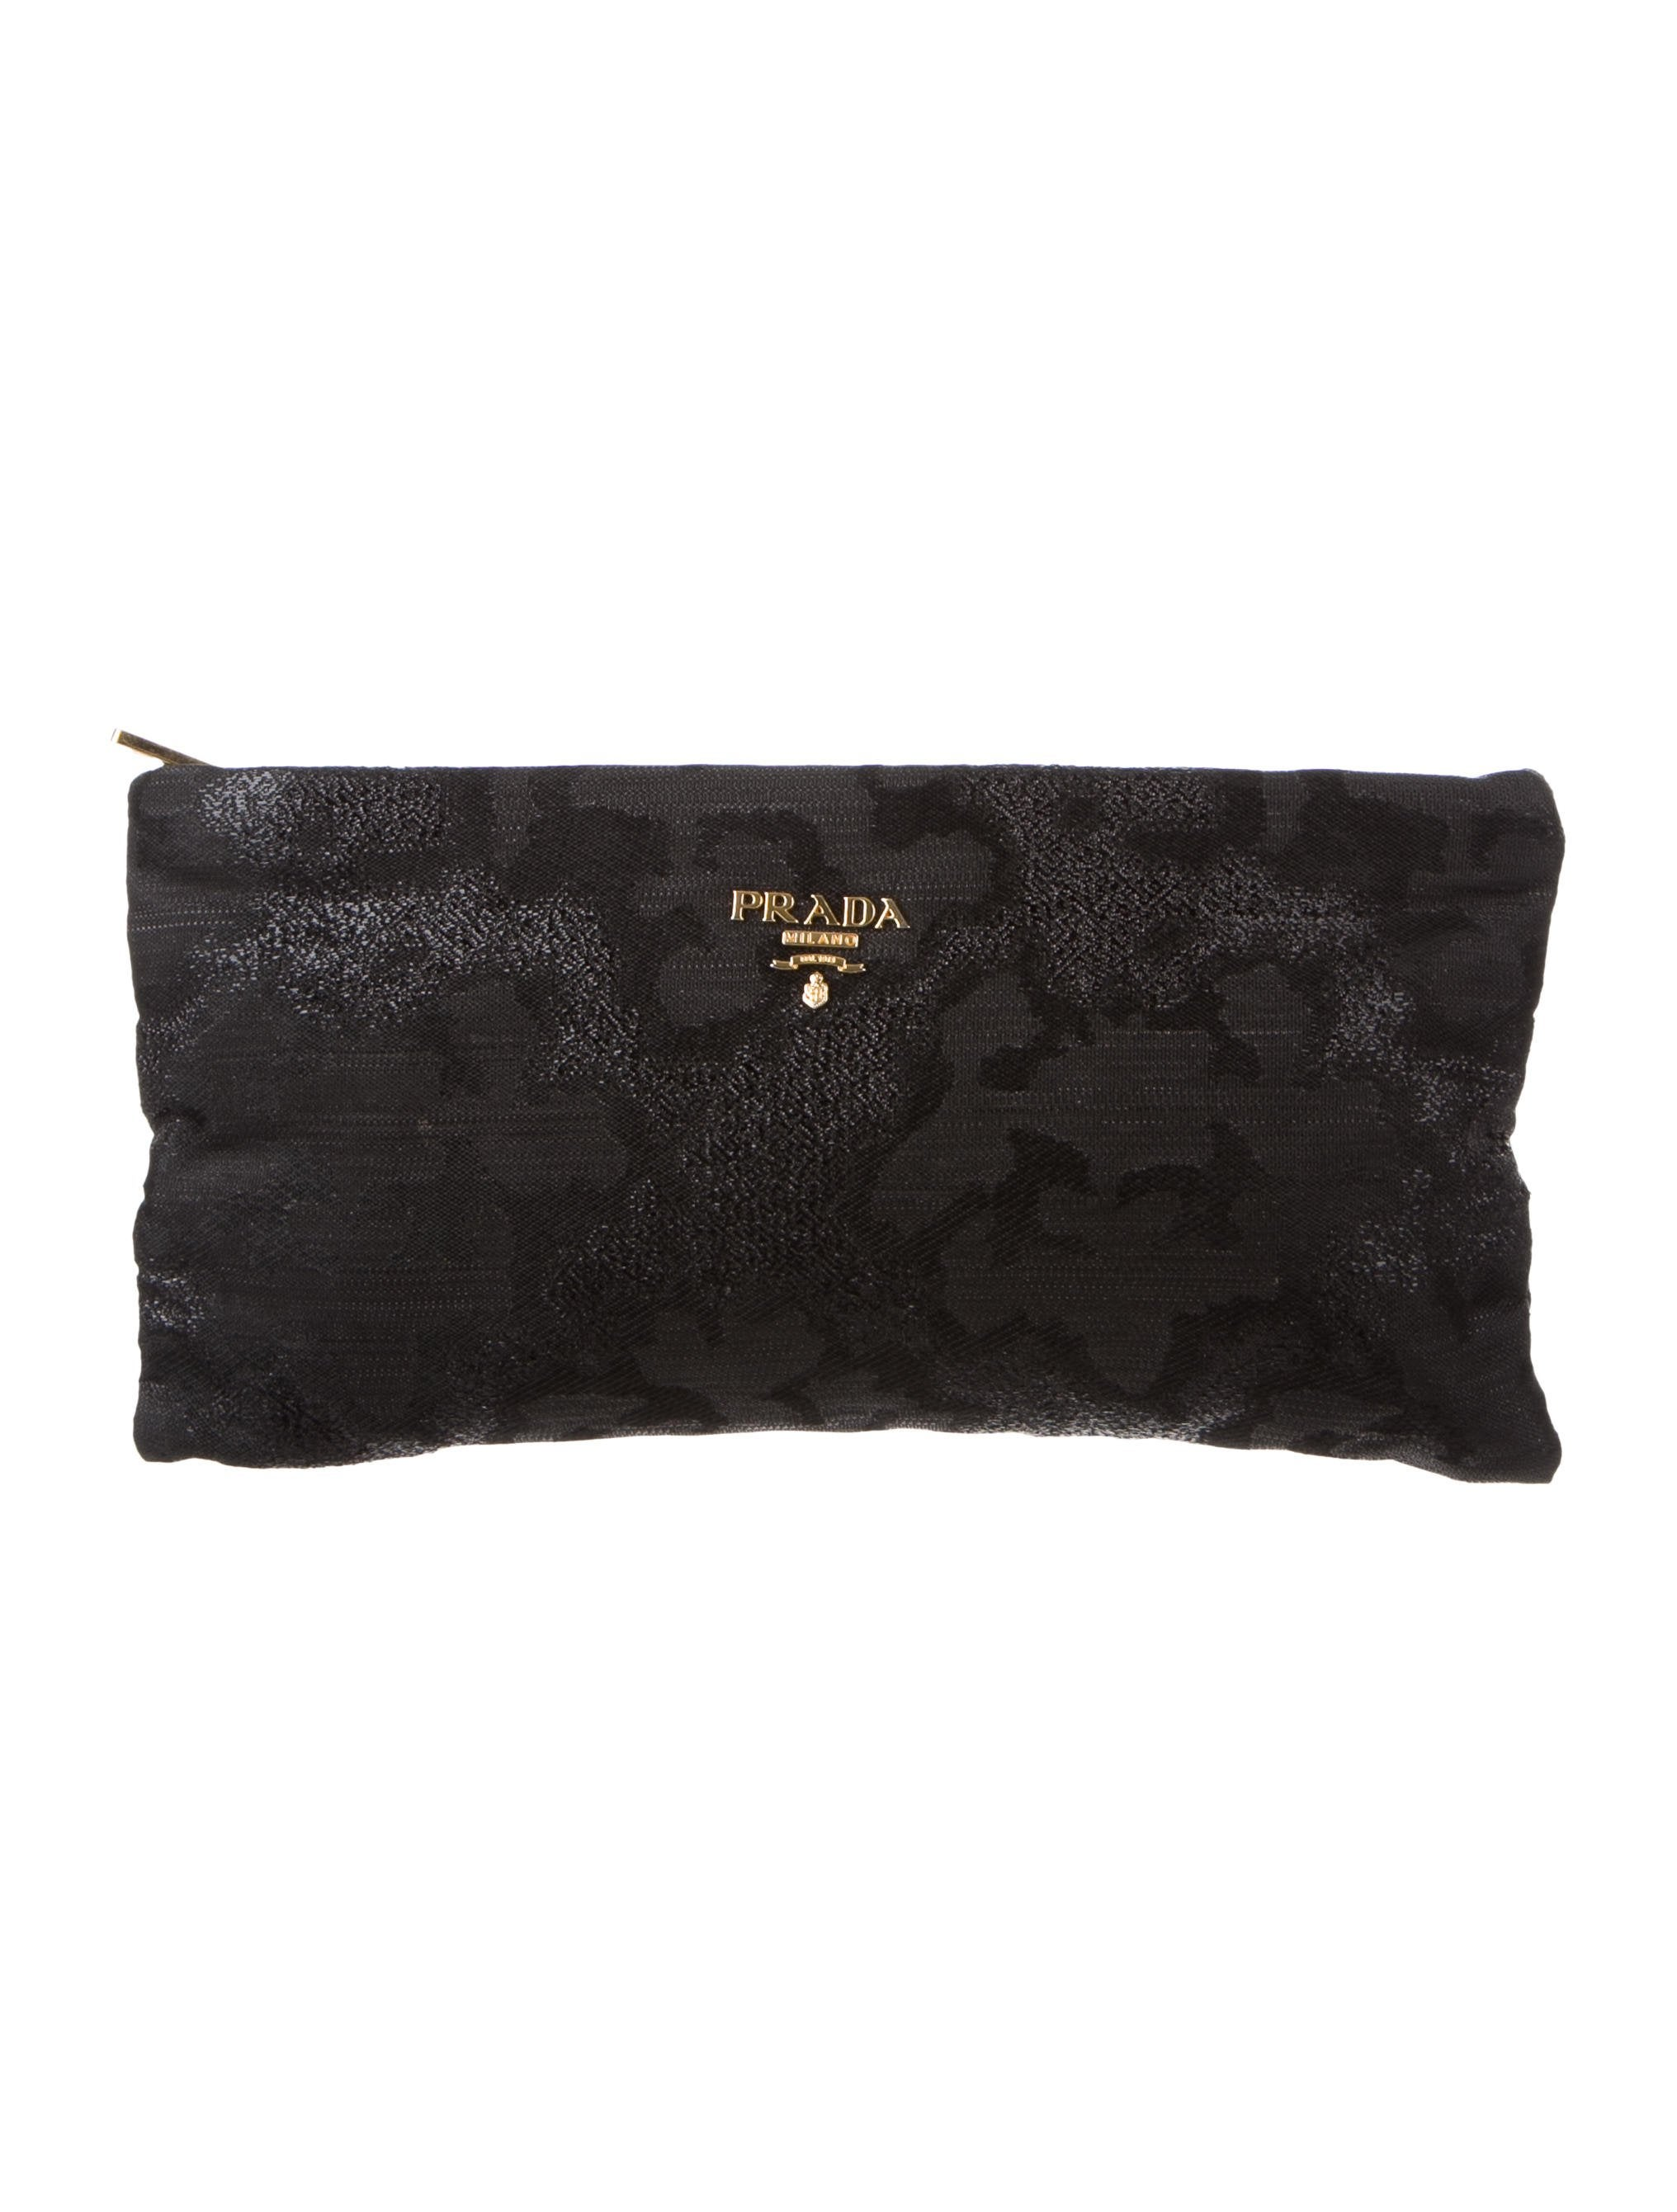 d8248754d3 Prada Woven Zip Clutch - Handbags - PRA240860